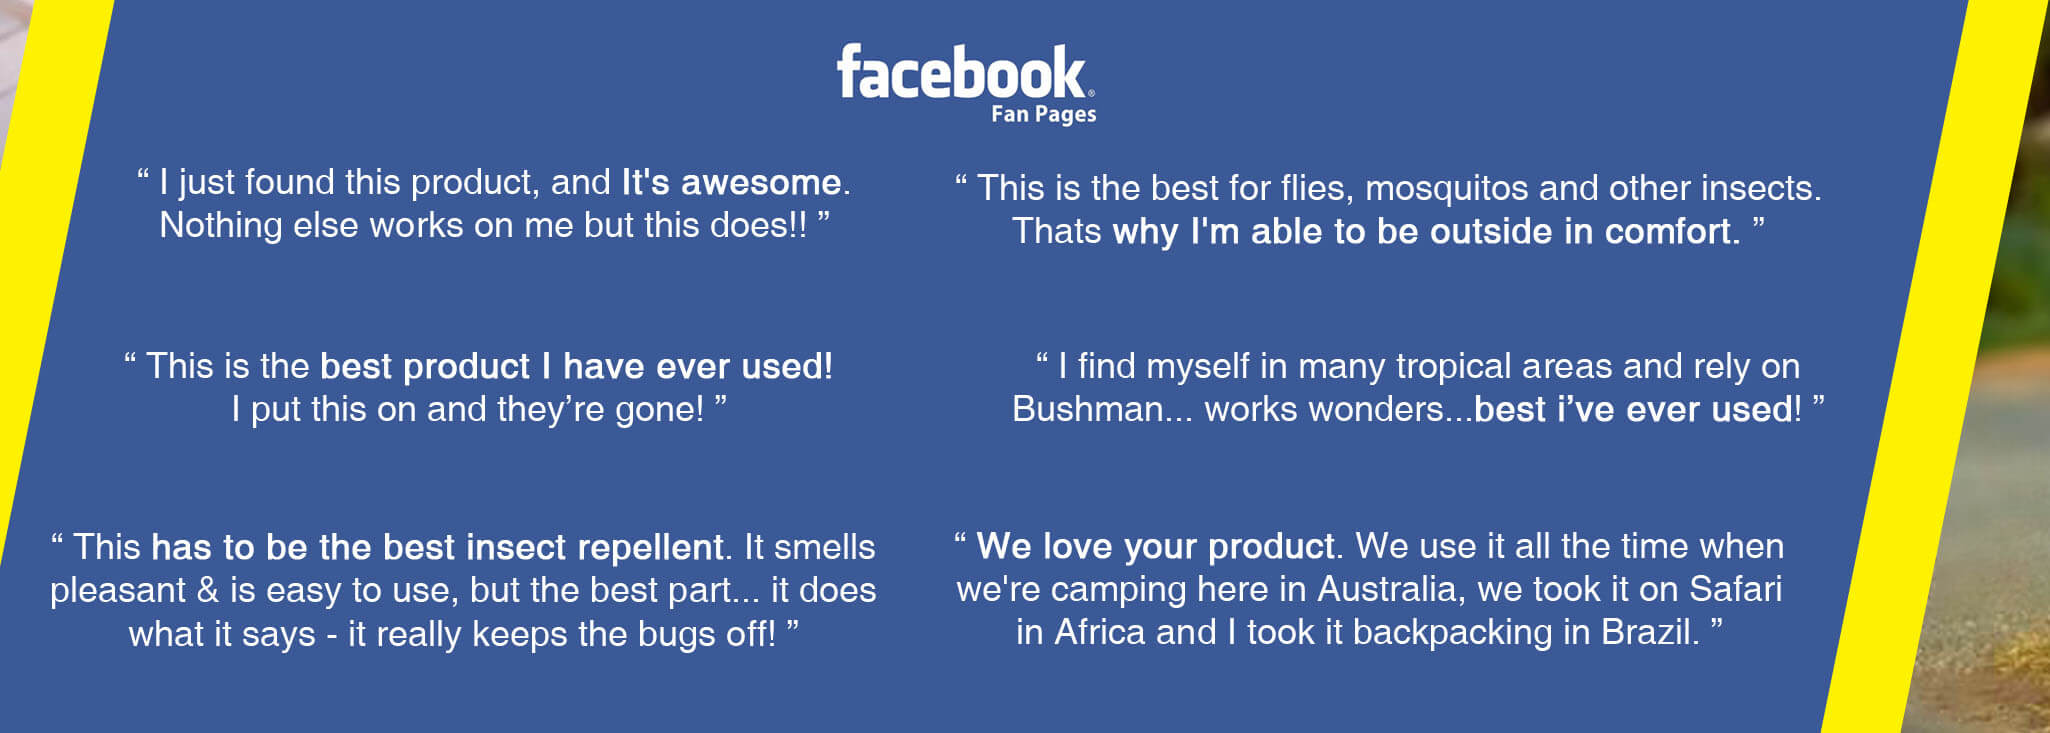 Facebook: It is awesome. Best insect repellent - review